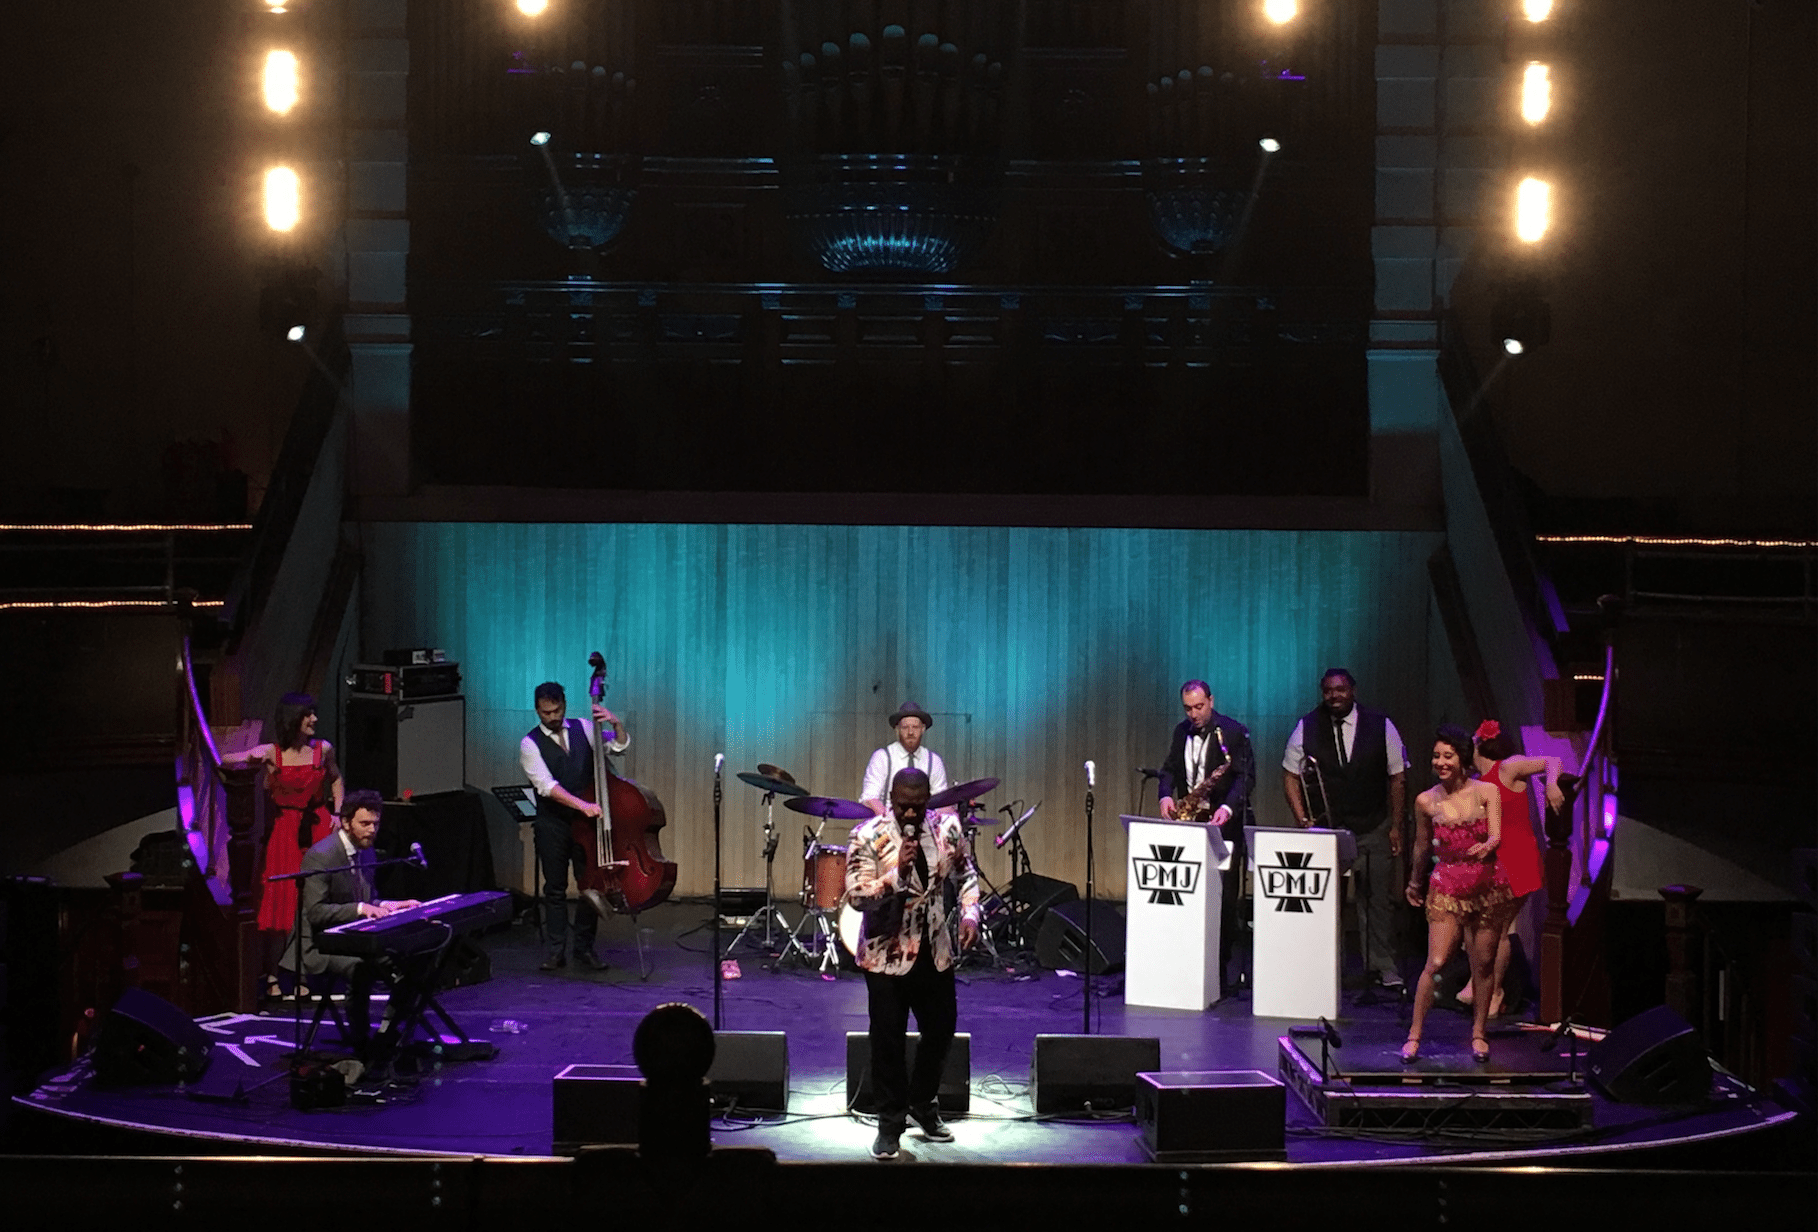 Scott Bradlee's Postmodern Jukebox performing at Albert Hall on 3 March 2016.